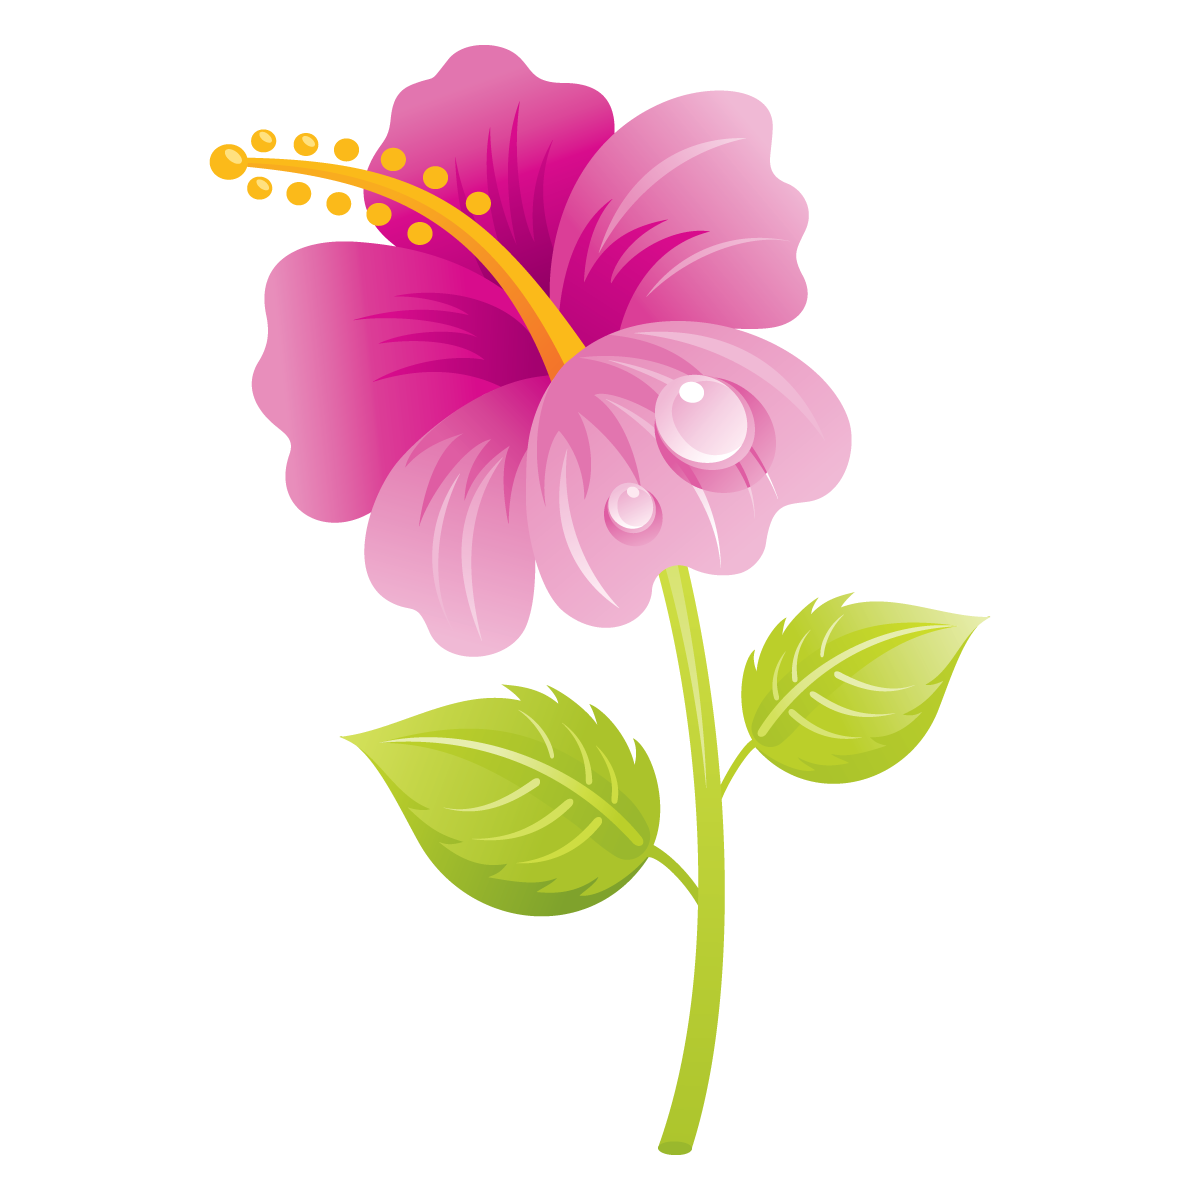 Mothers day flowers png. Buncee clipart flower syedimran